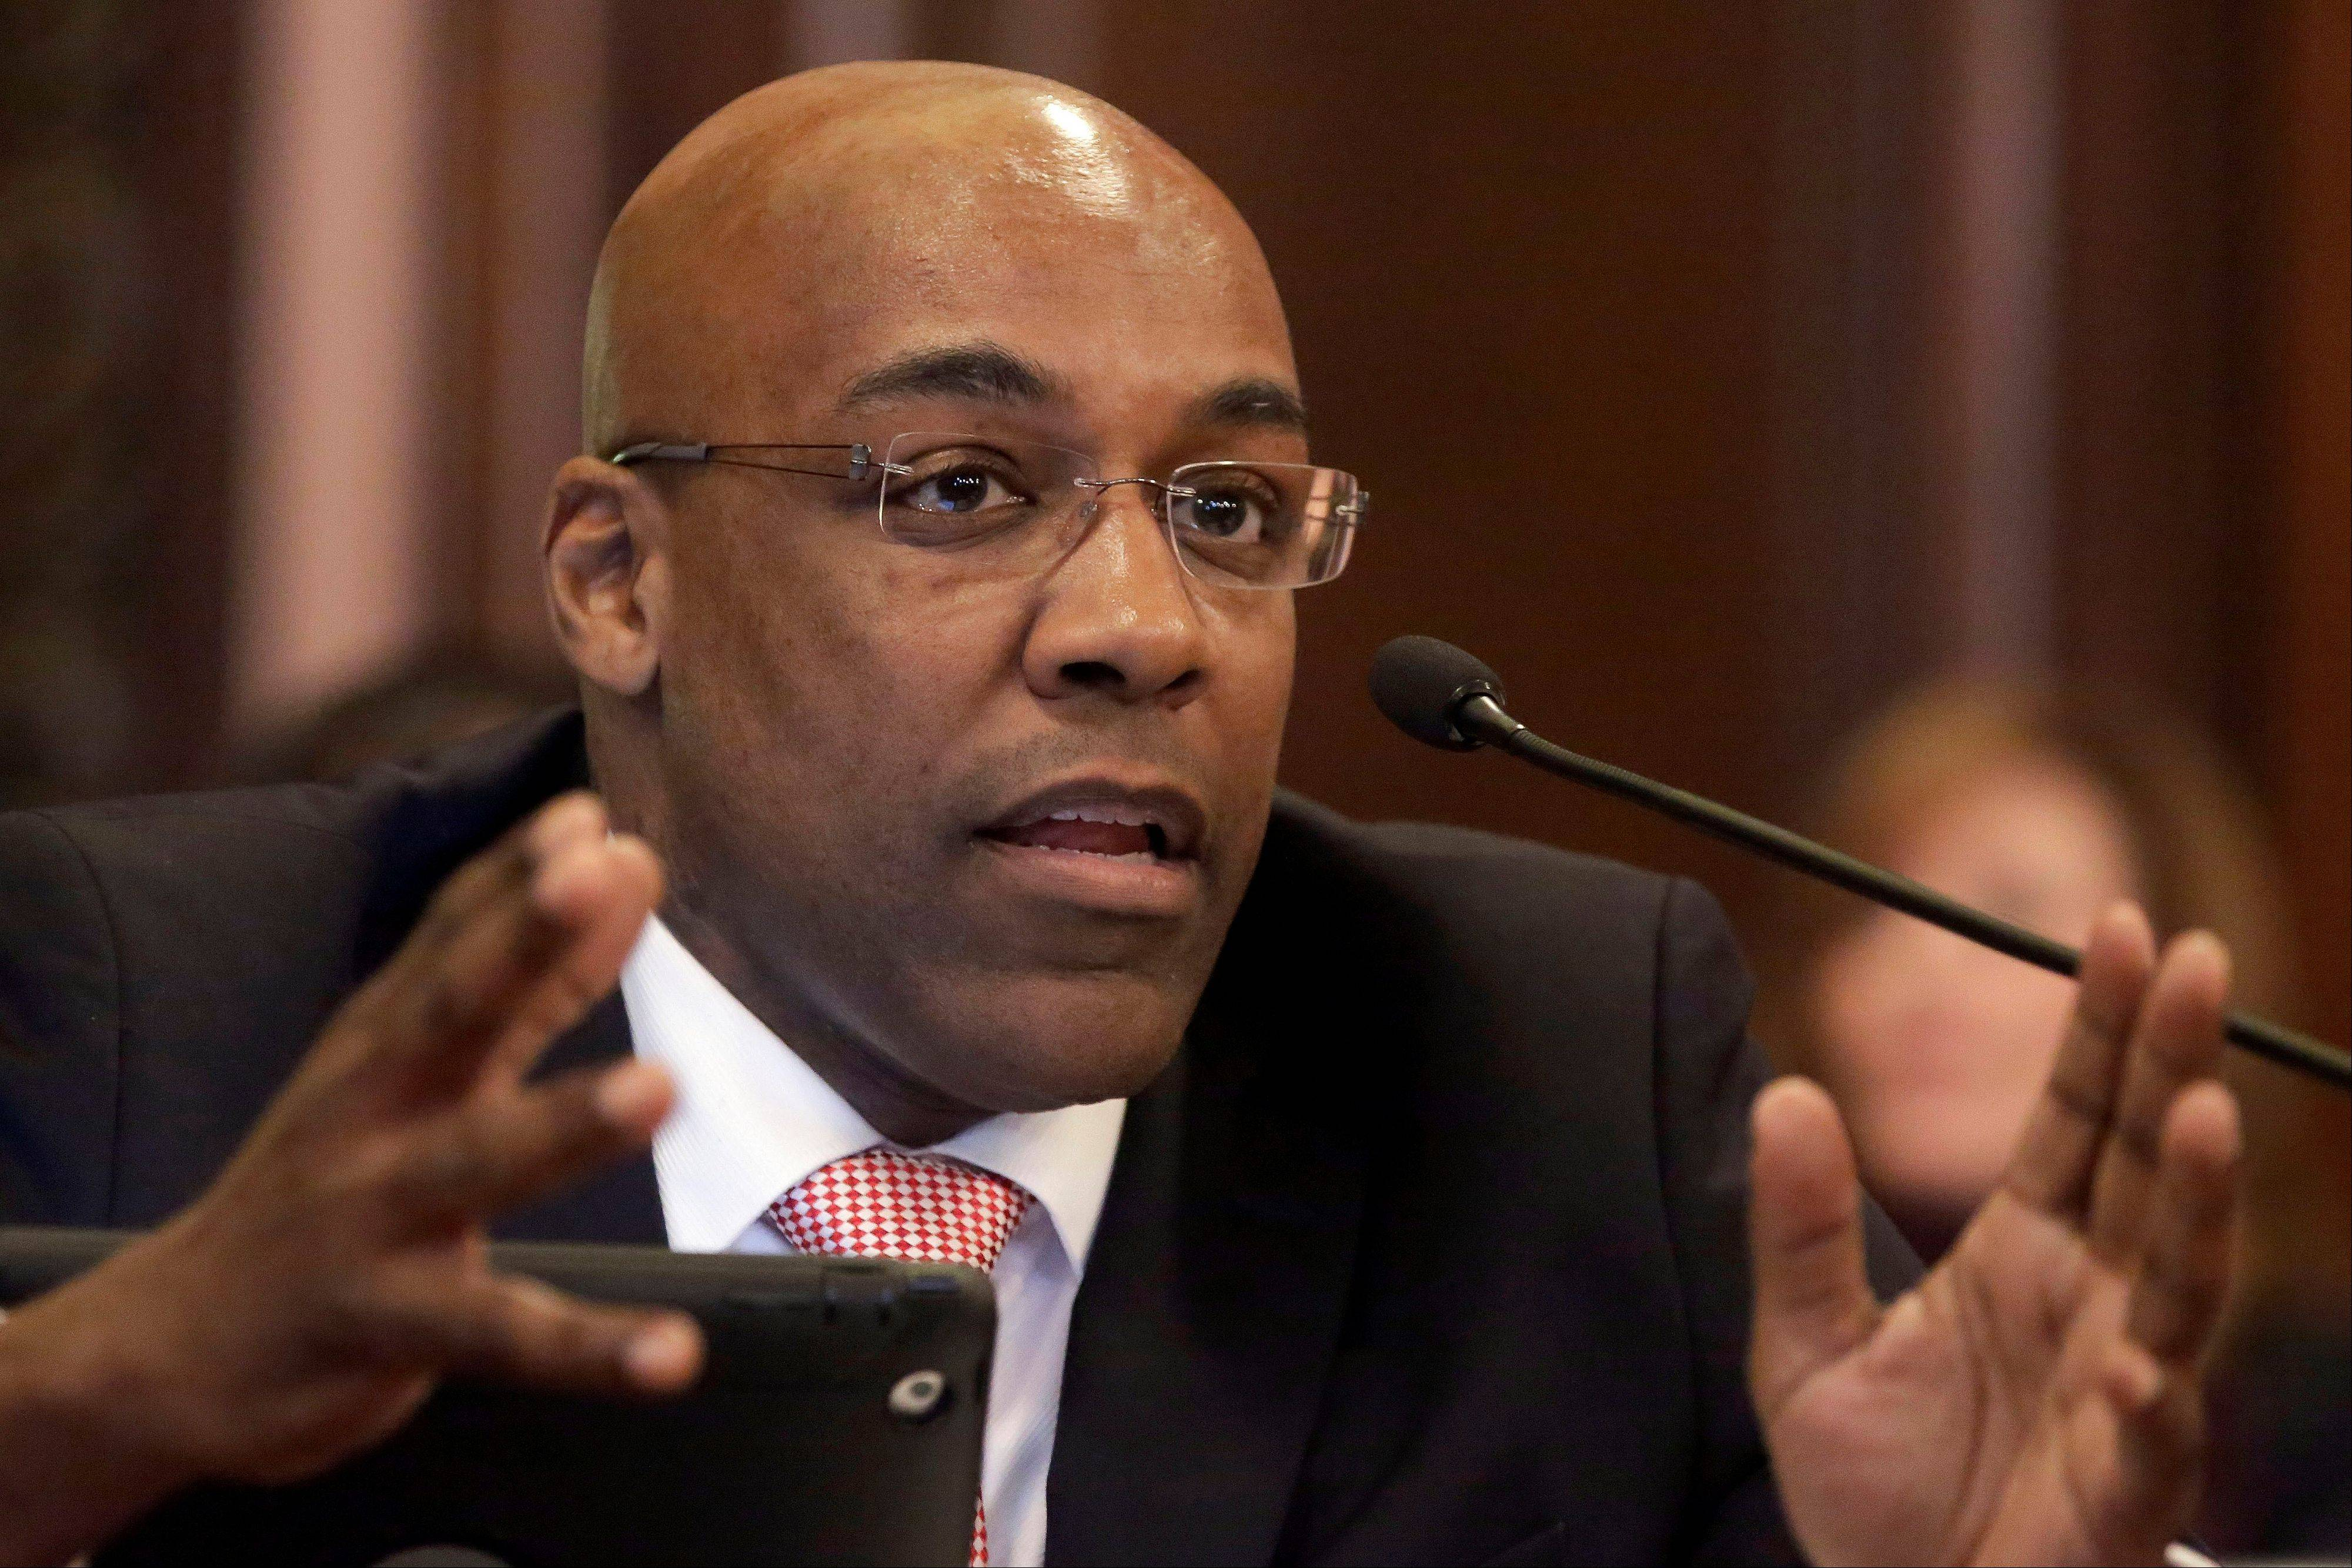 State Sen. Kwame Raoul, a Chicago Democrat, will discuss Illinois� fiscal crisis during a Nov. 18 appearance at Elmhurst College.